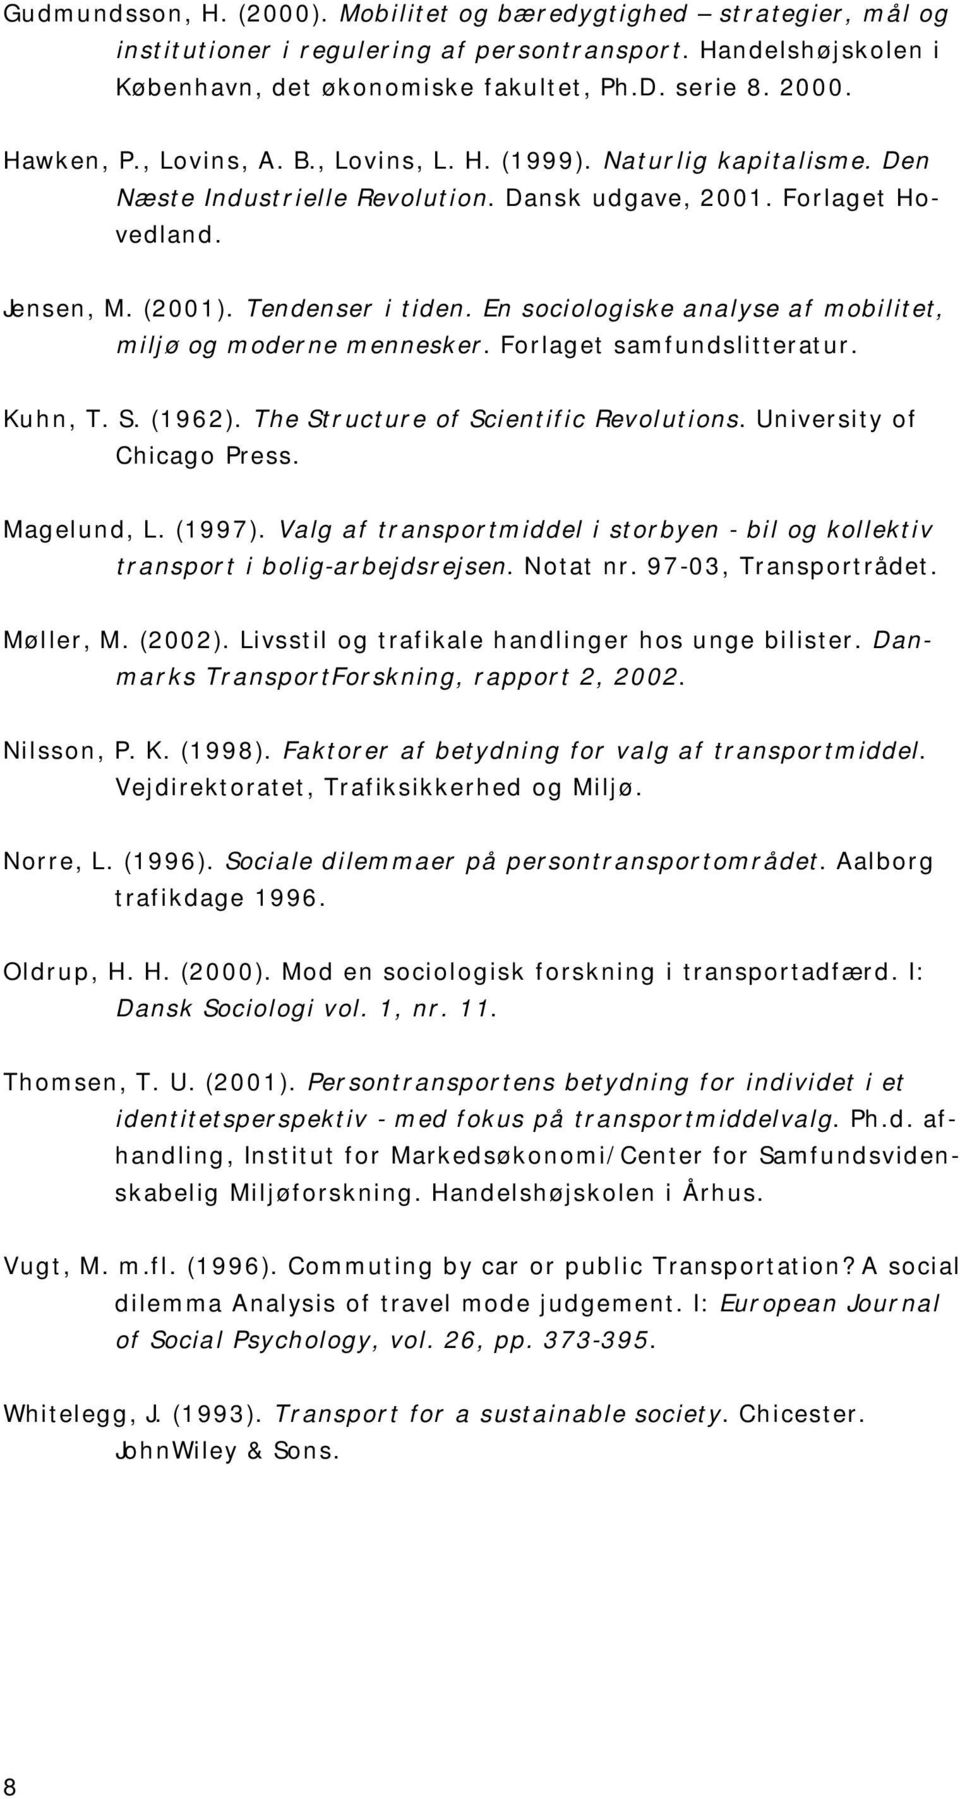 En sociologiske analyse af mobilitet, miljø og moderne mennesker. Forlaget samfundslitteratur. Kuhn, T. S. (1962). The Structure of Scientific Revolutions. University of Chicago Press. Magelund, L.